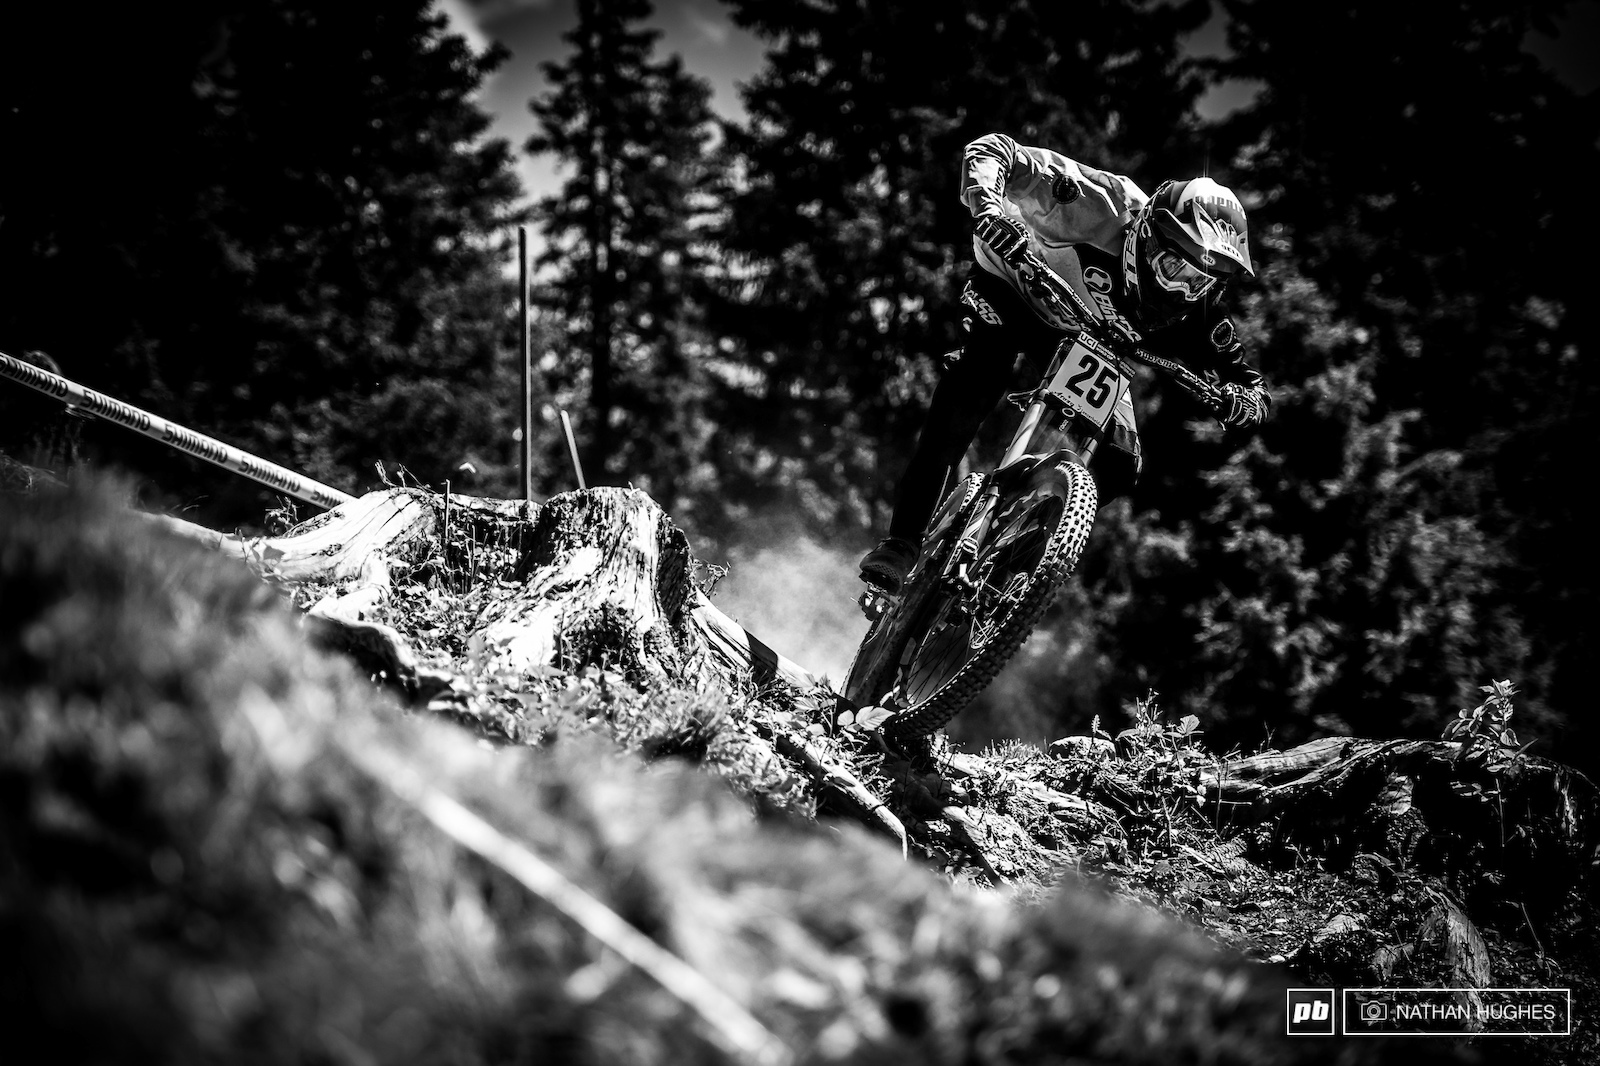 Atwill on a surge of confidence after Vallnord and giving it the beans all day.